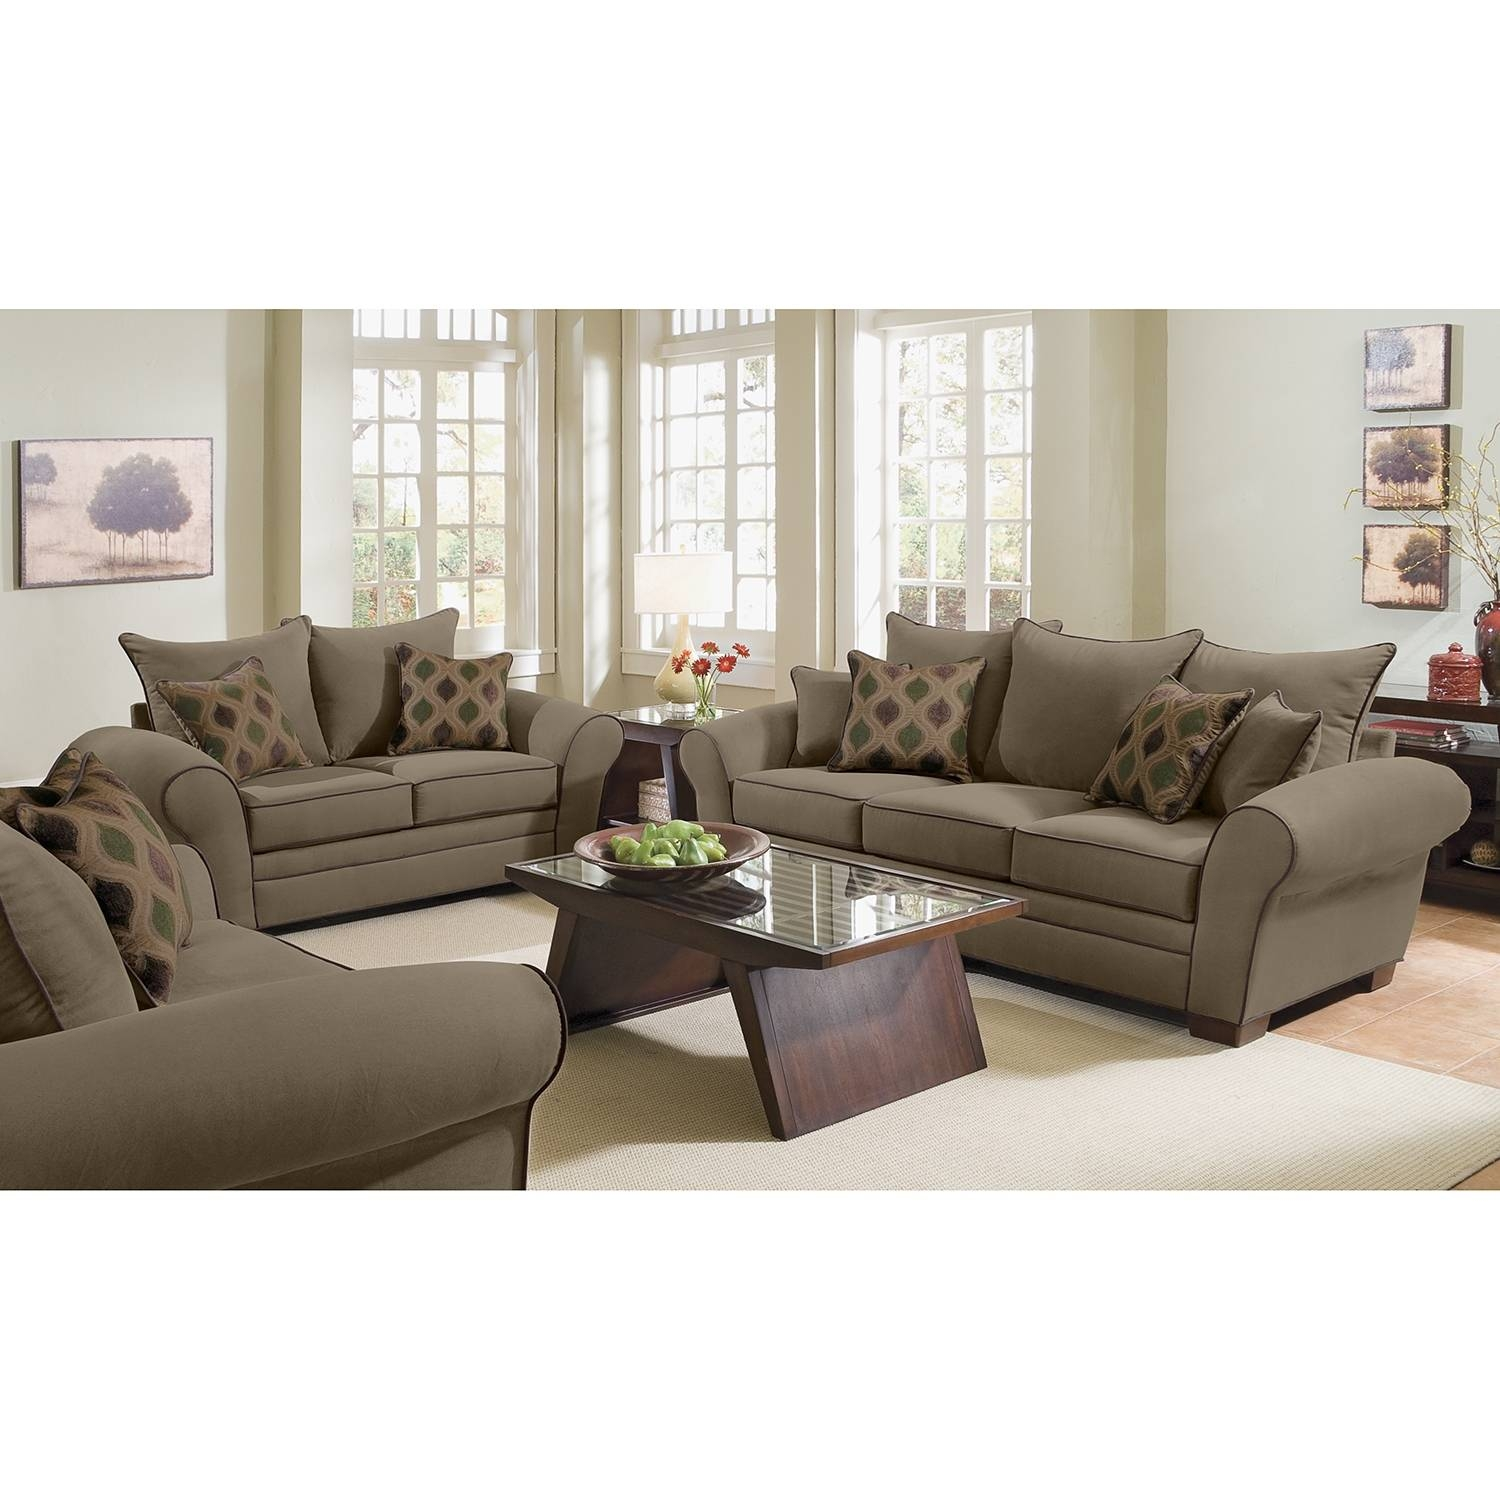 Value City Living Room Furniture Living Room Design And Living throughout Value City Sofas (Image 24 of 25)